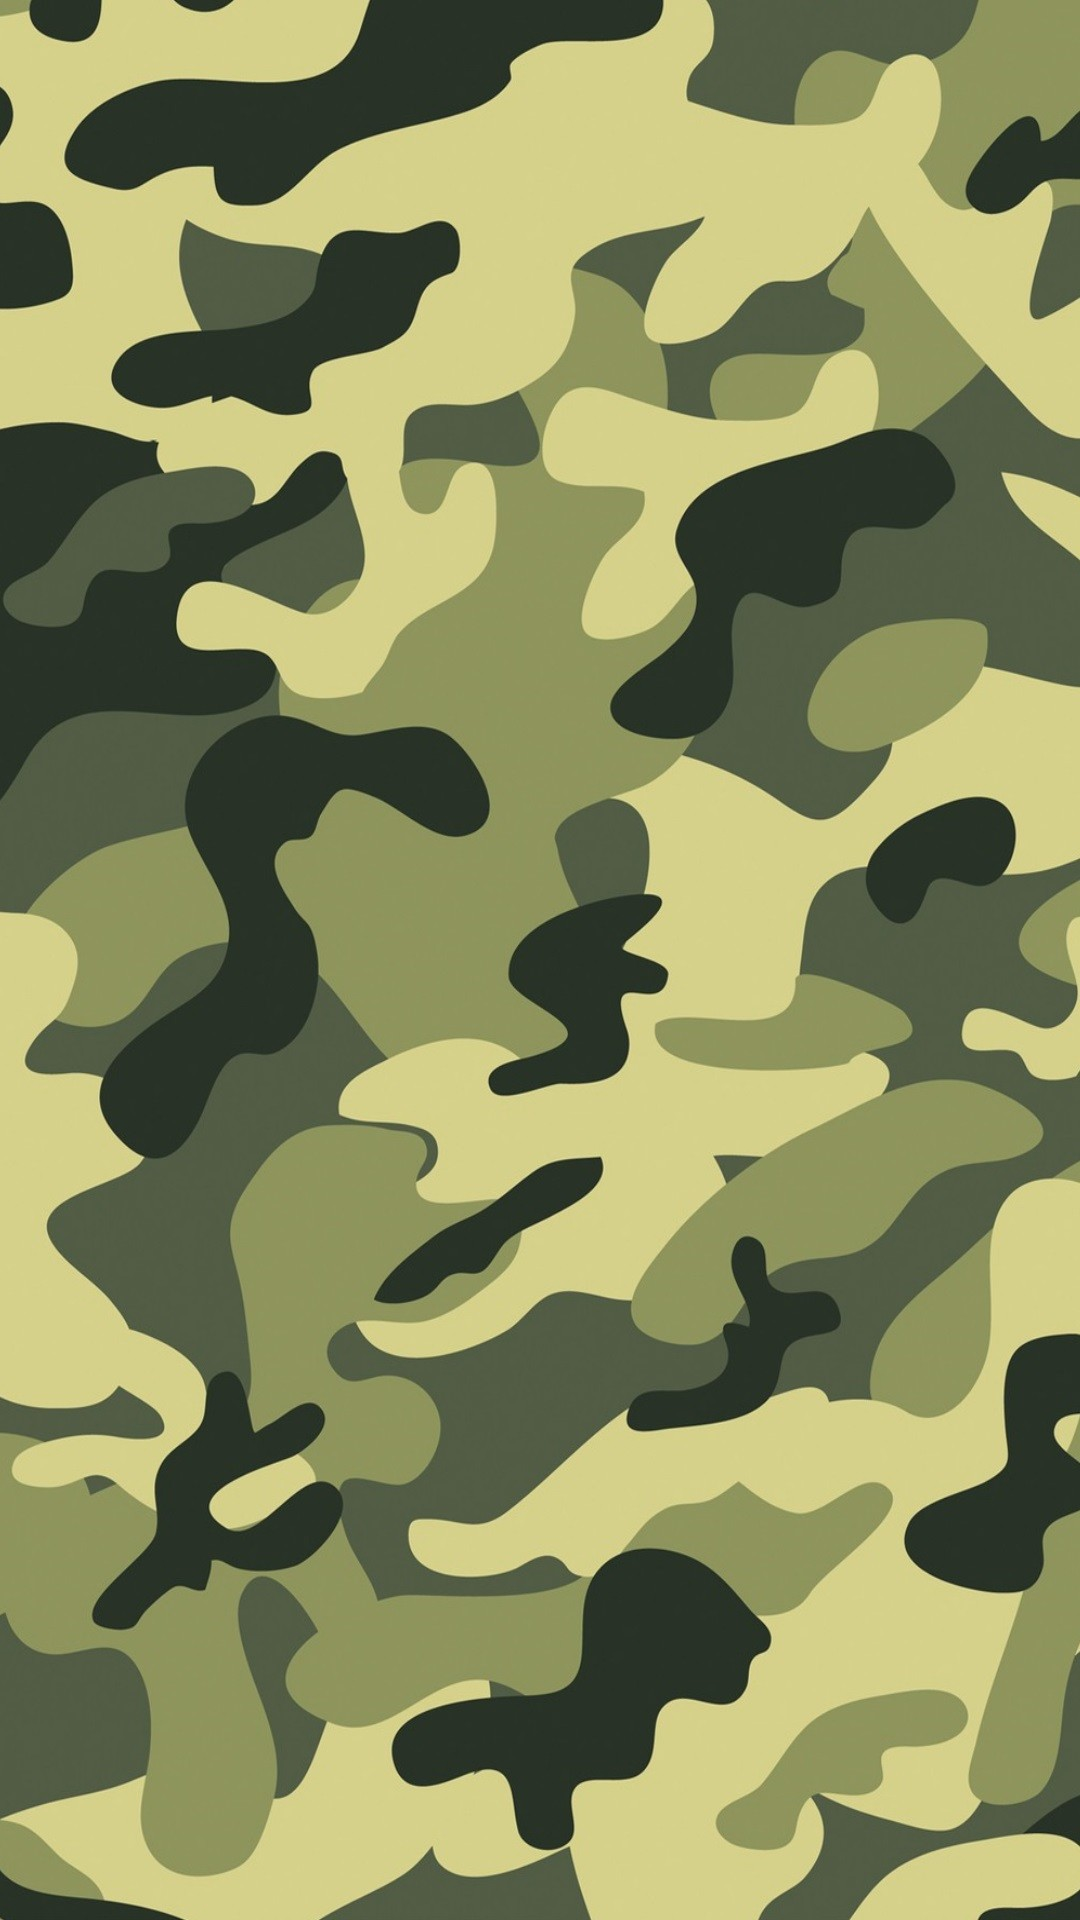 Black and White Camo Wallpaper (64+ images)